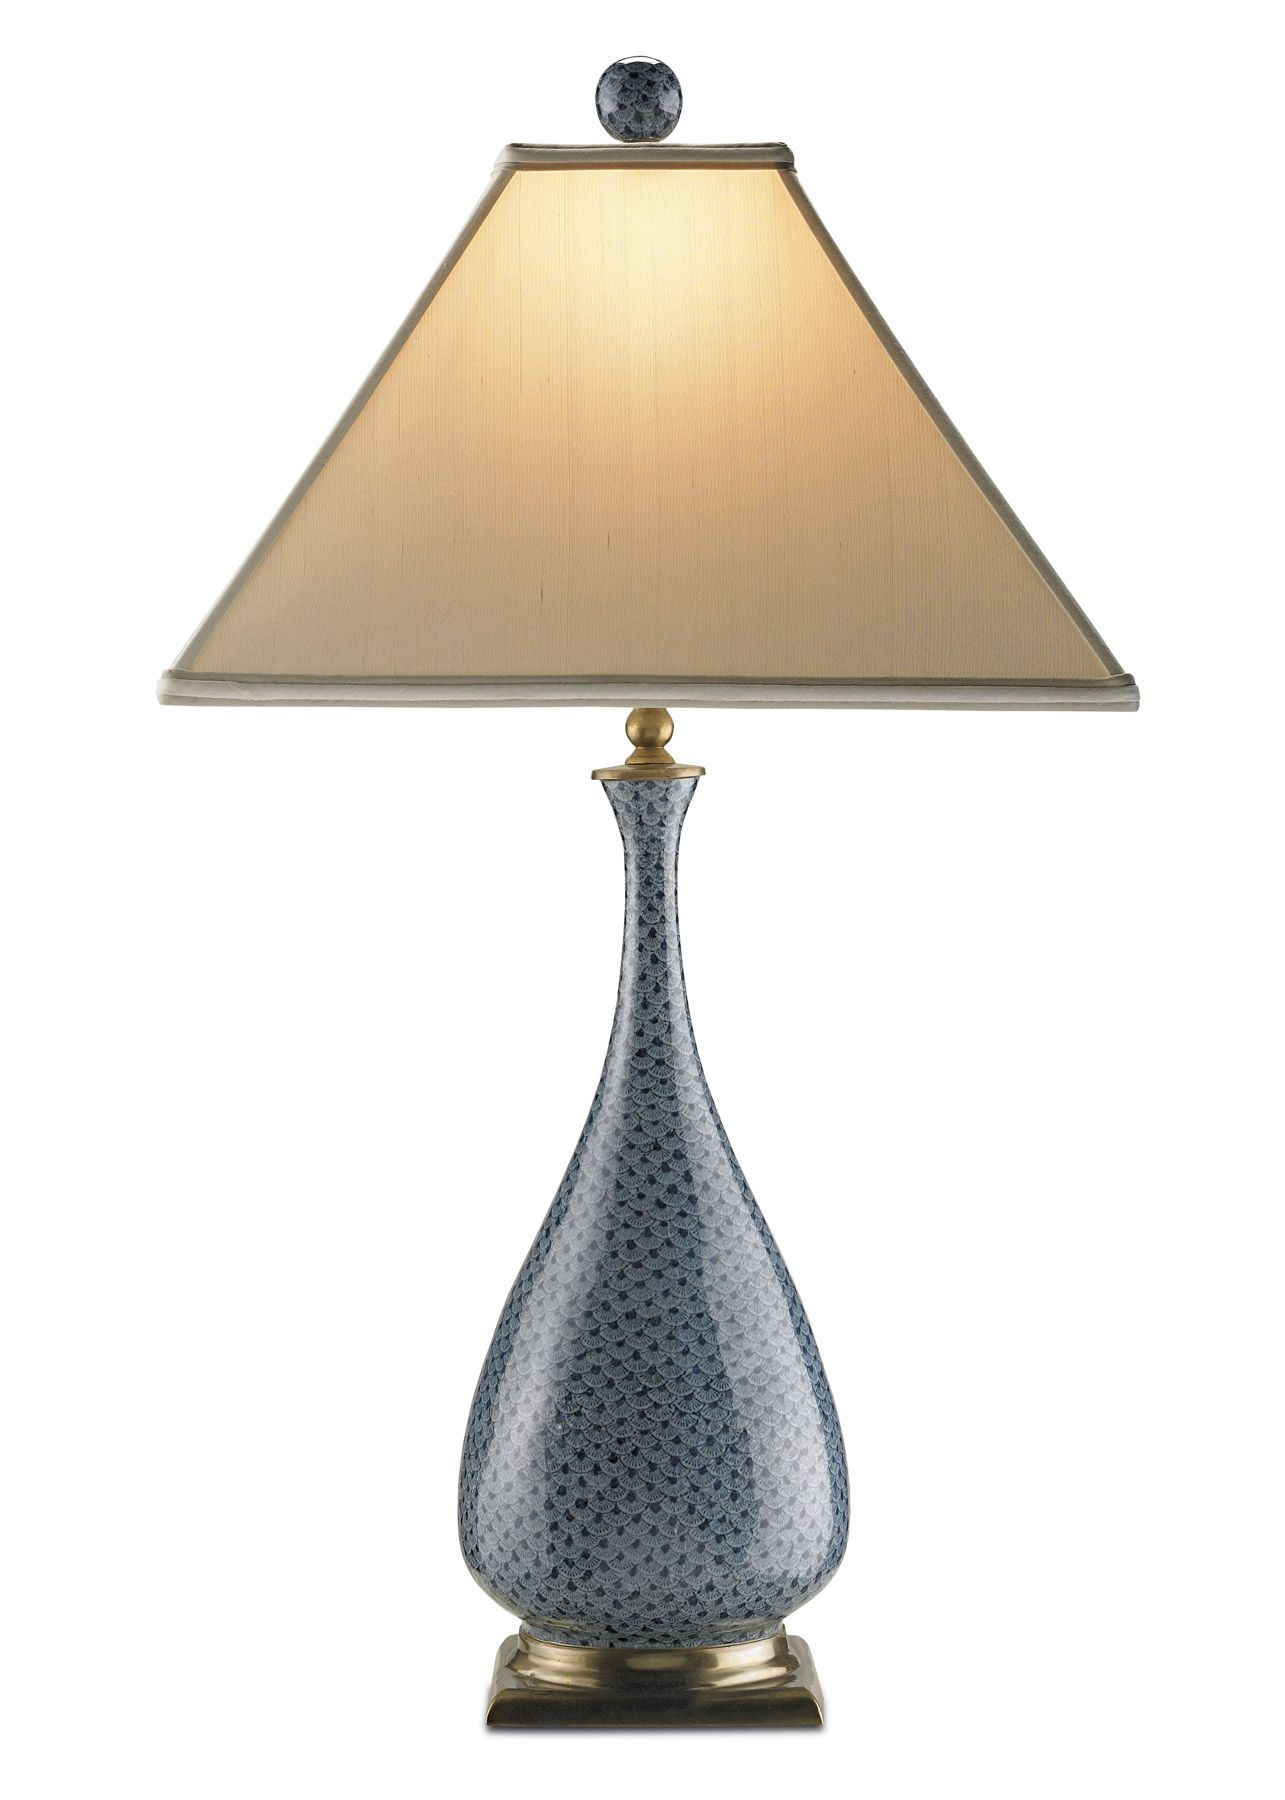 Table lamp this one looks really pretty table lamps pinterest table lamp this one looks really pretty aloadofball Image collections